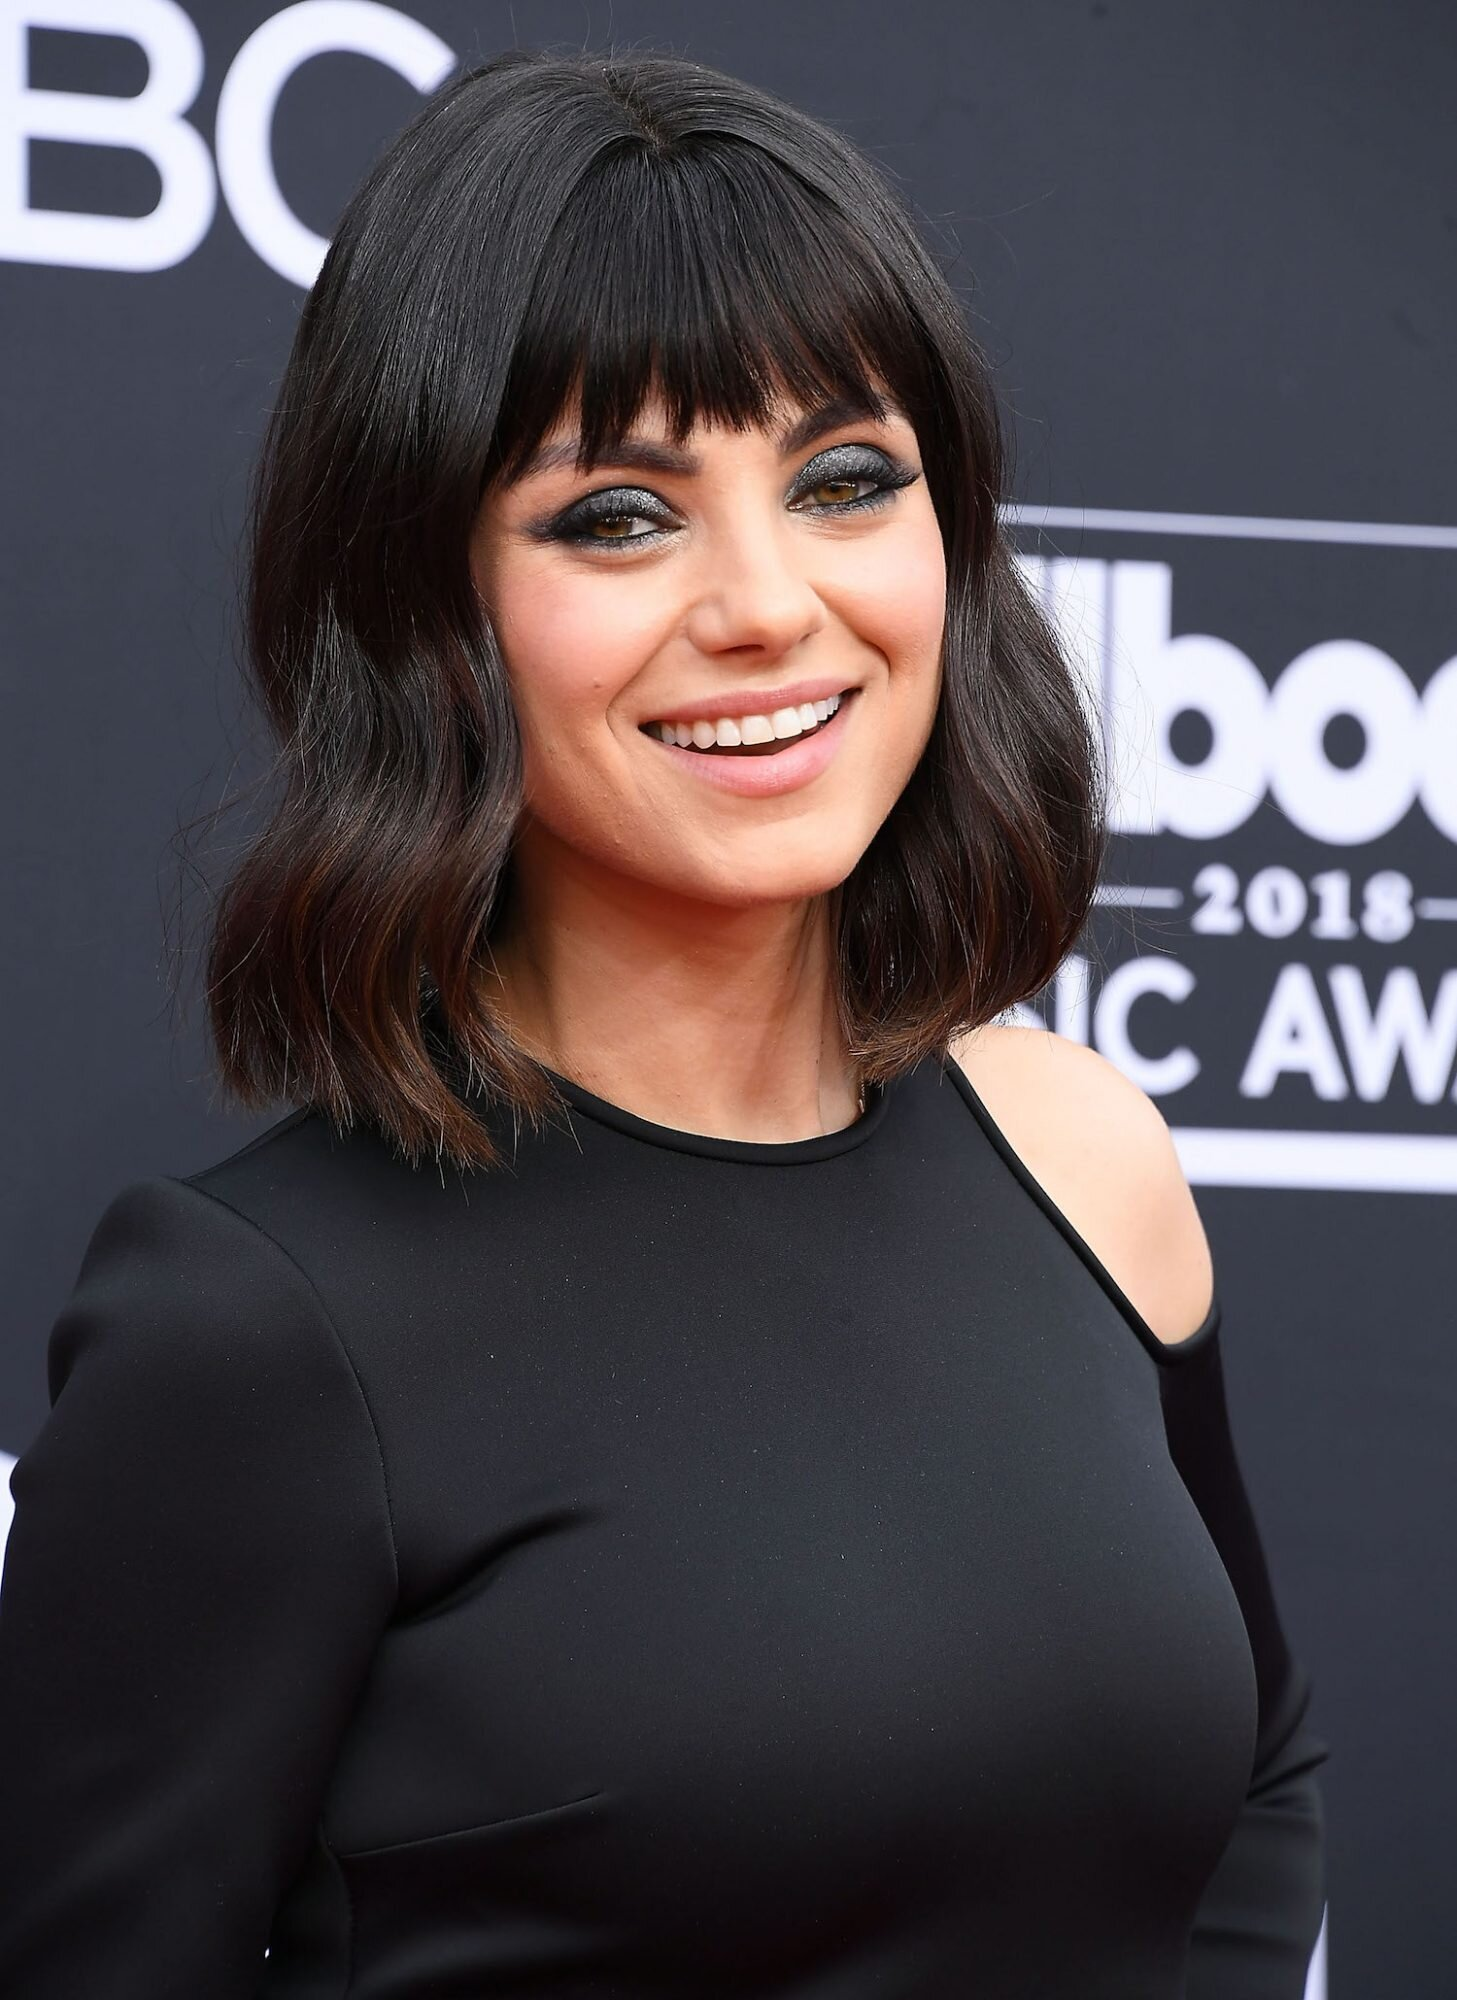 Baby Bangs And Bobs Will Be The Hottest Hairstyles Of Summer Real Simple